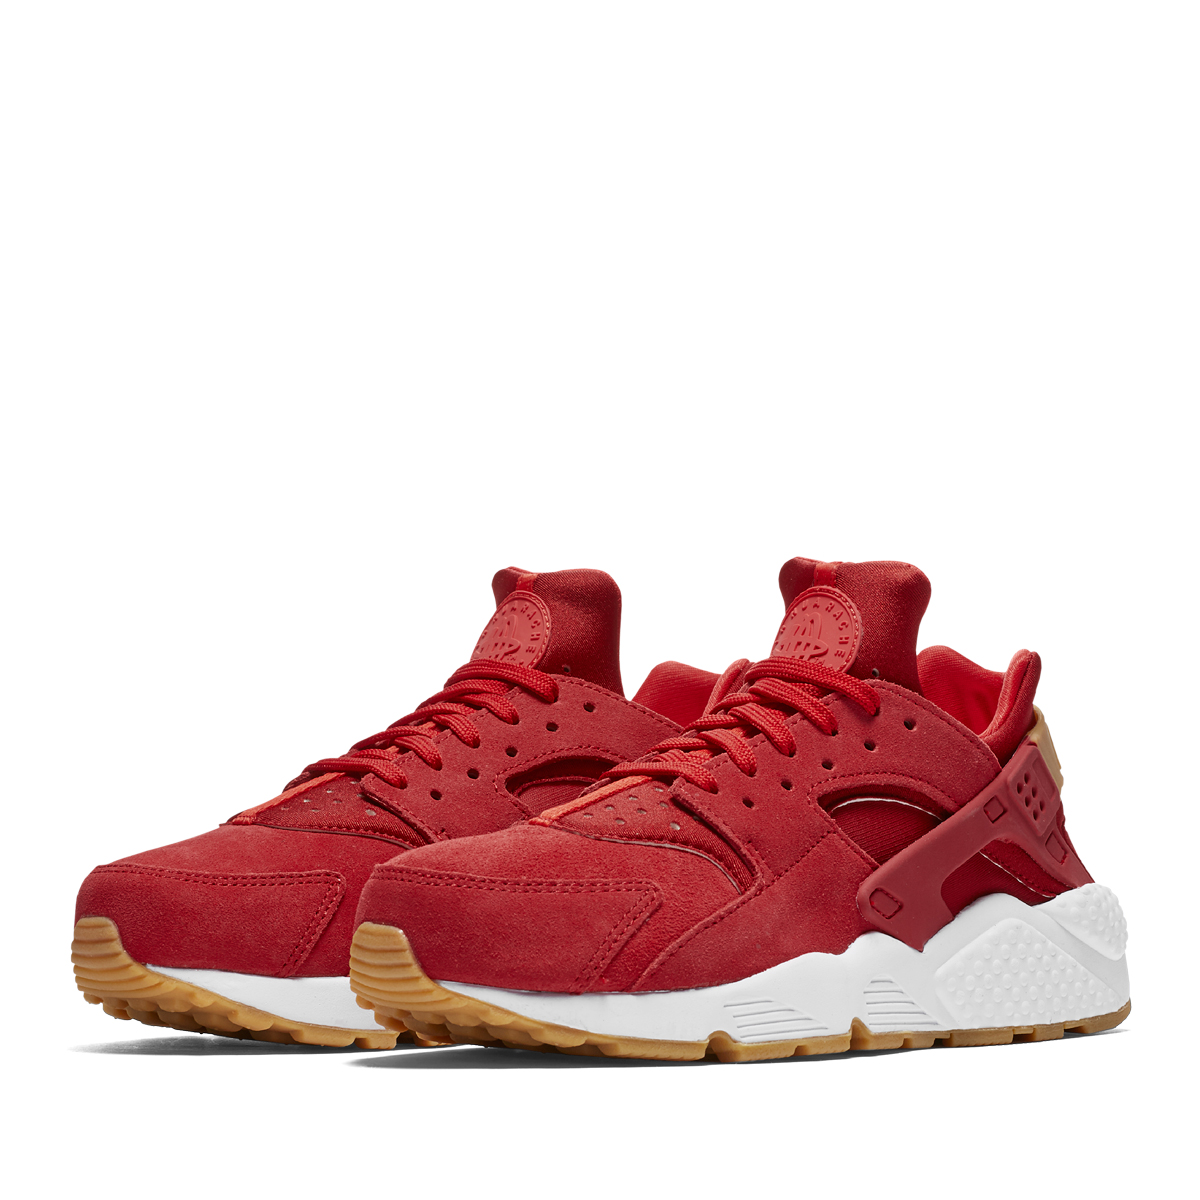 NIKE WMNS AIR HUARACHE RUN SD(ナイキ ウィメンズ エア ハラチ ラン SD)GYM RED/GYM RED-SPEED RED【メンズ レディース スニーカー】18SP-I